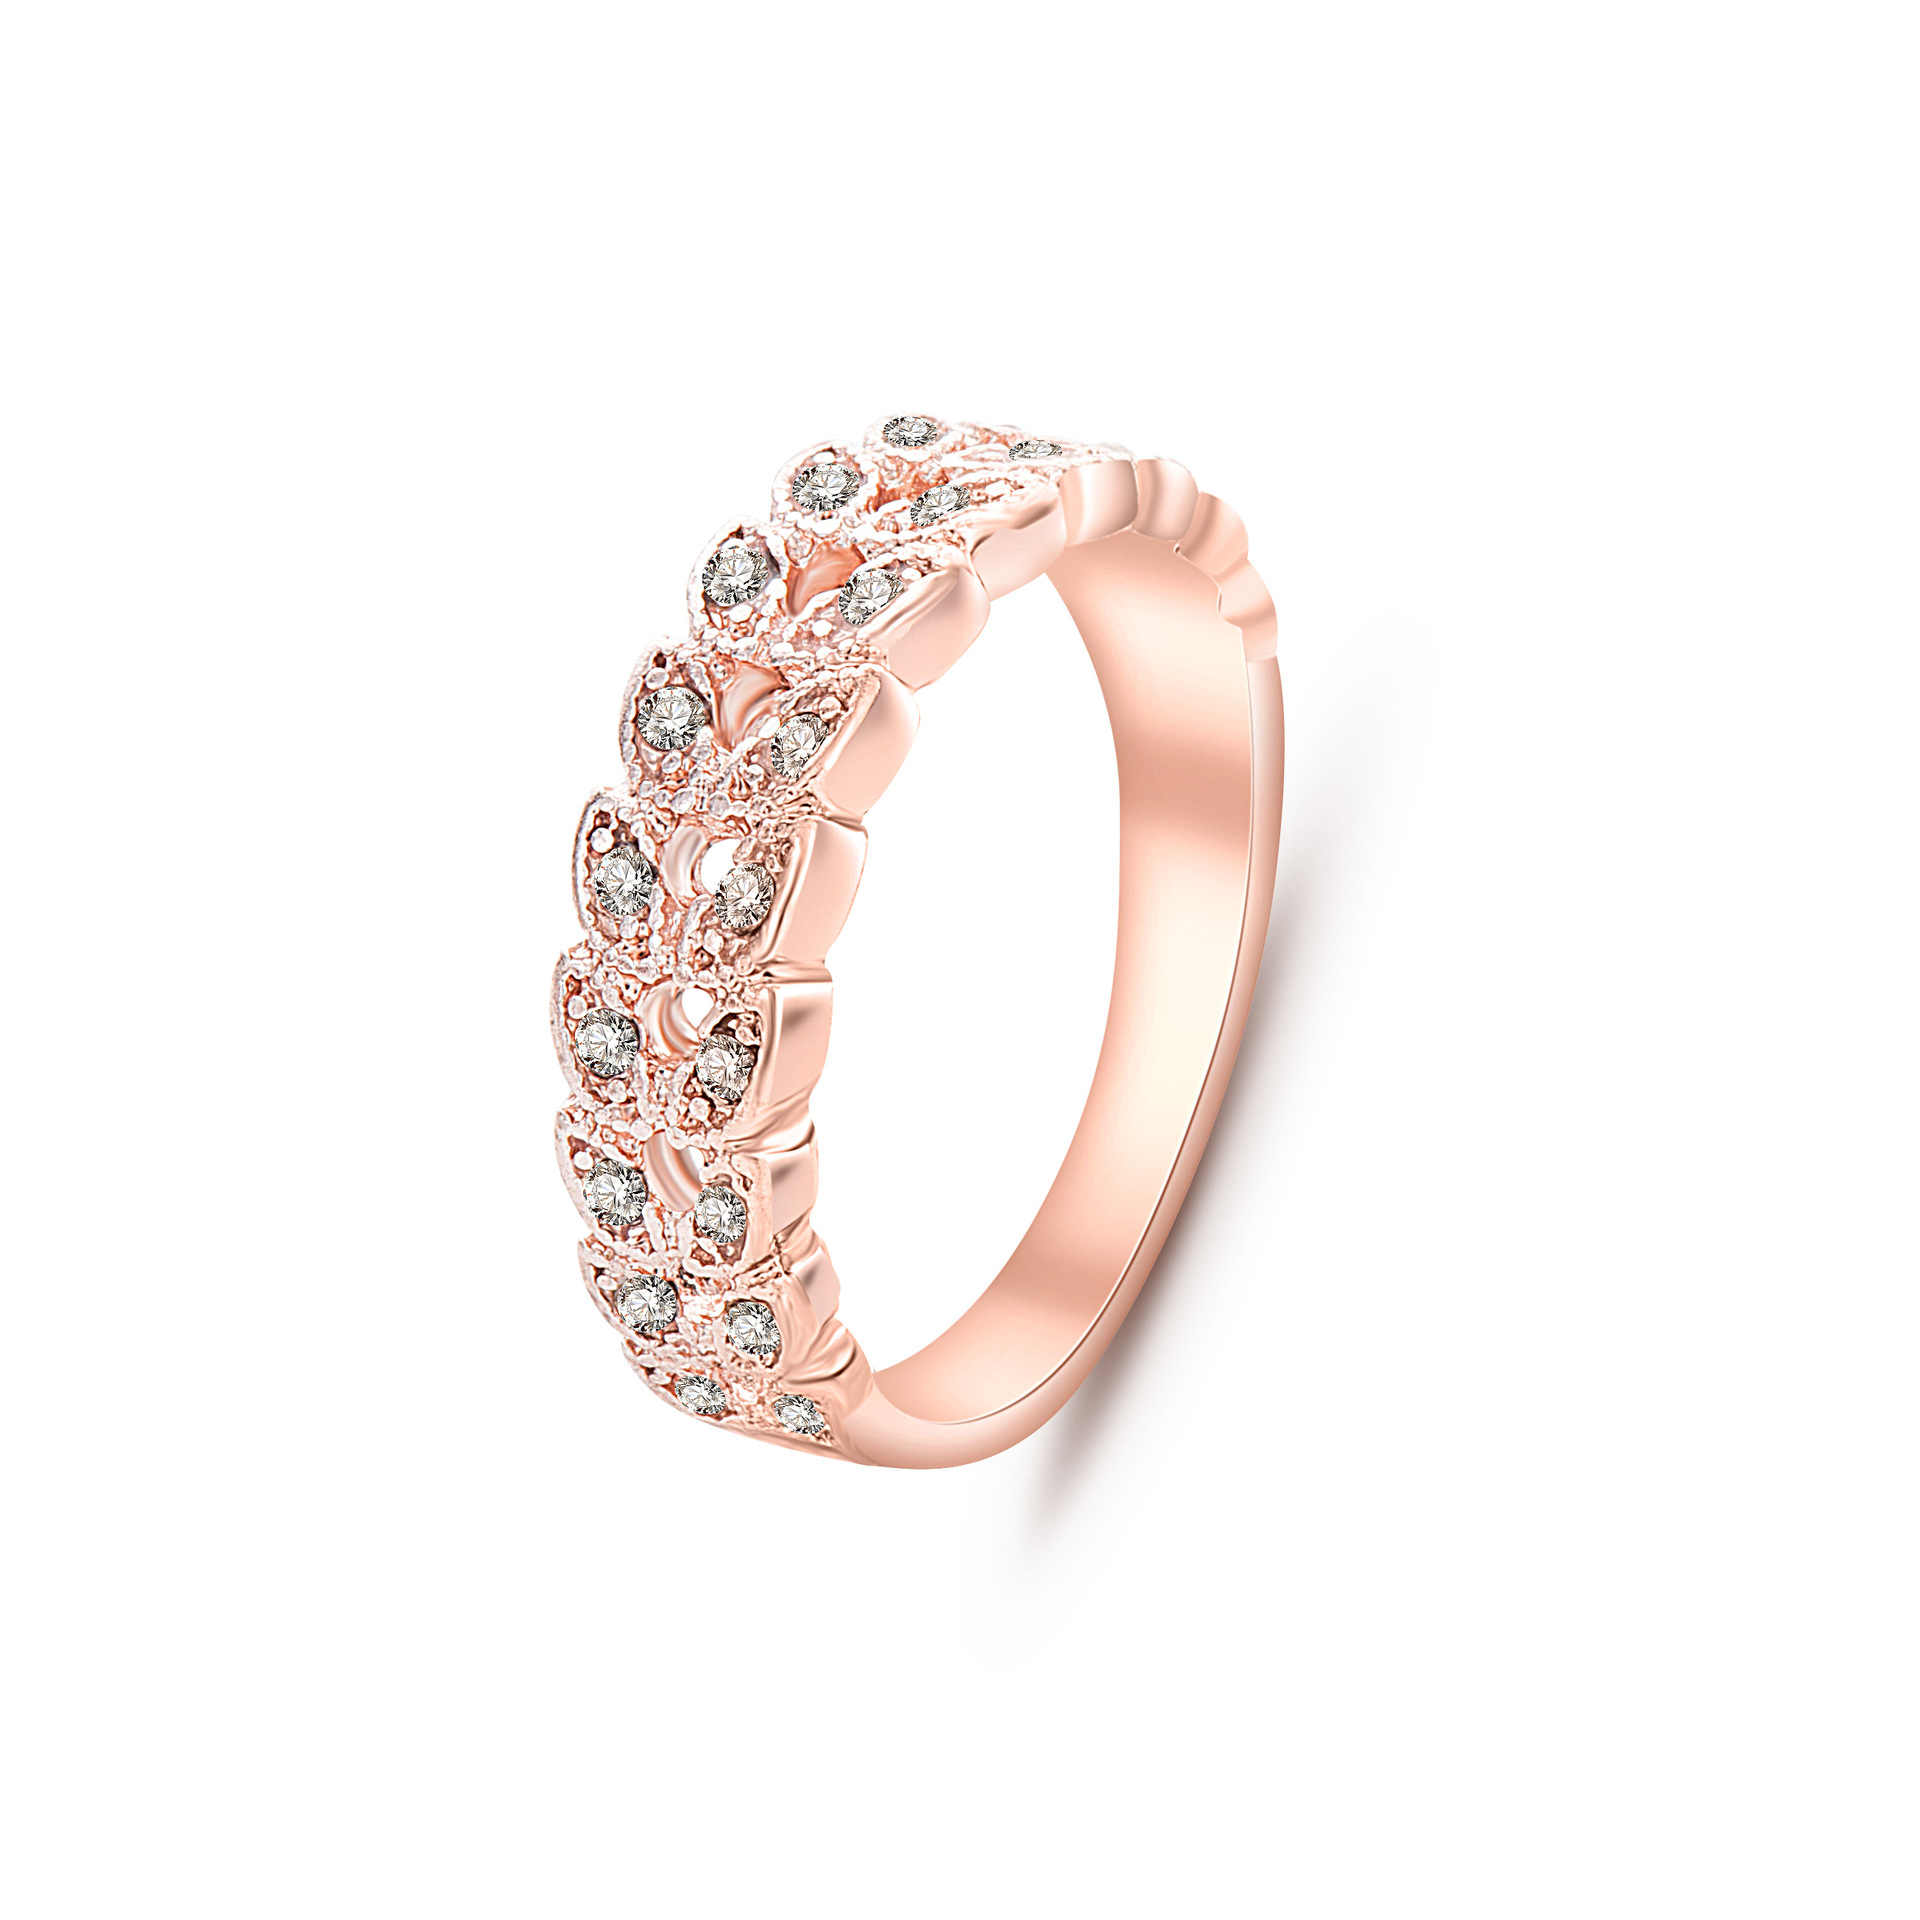 2018 Simple Crystal Rose Gold Rings For Women Leaf Shape Wedding Rings For Ladies Fashion Finger Rings For Women birthday Gifts